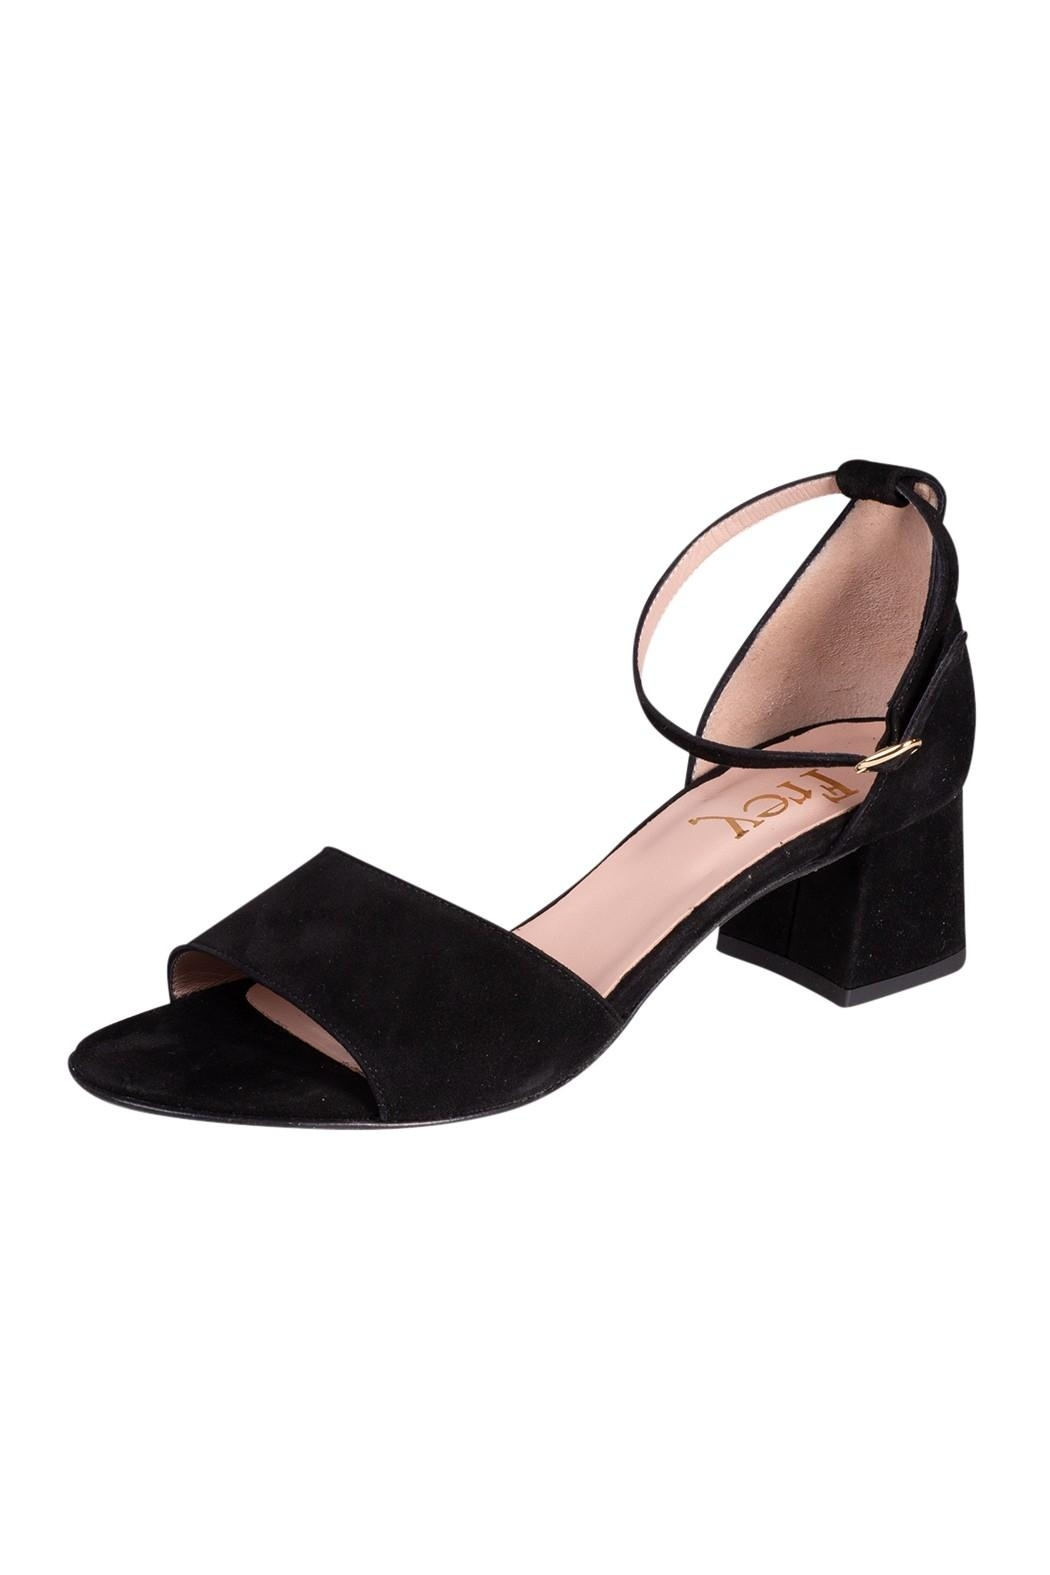 Pascucci Black Suede Heels - Front Full Image